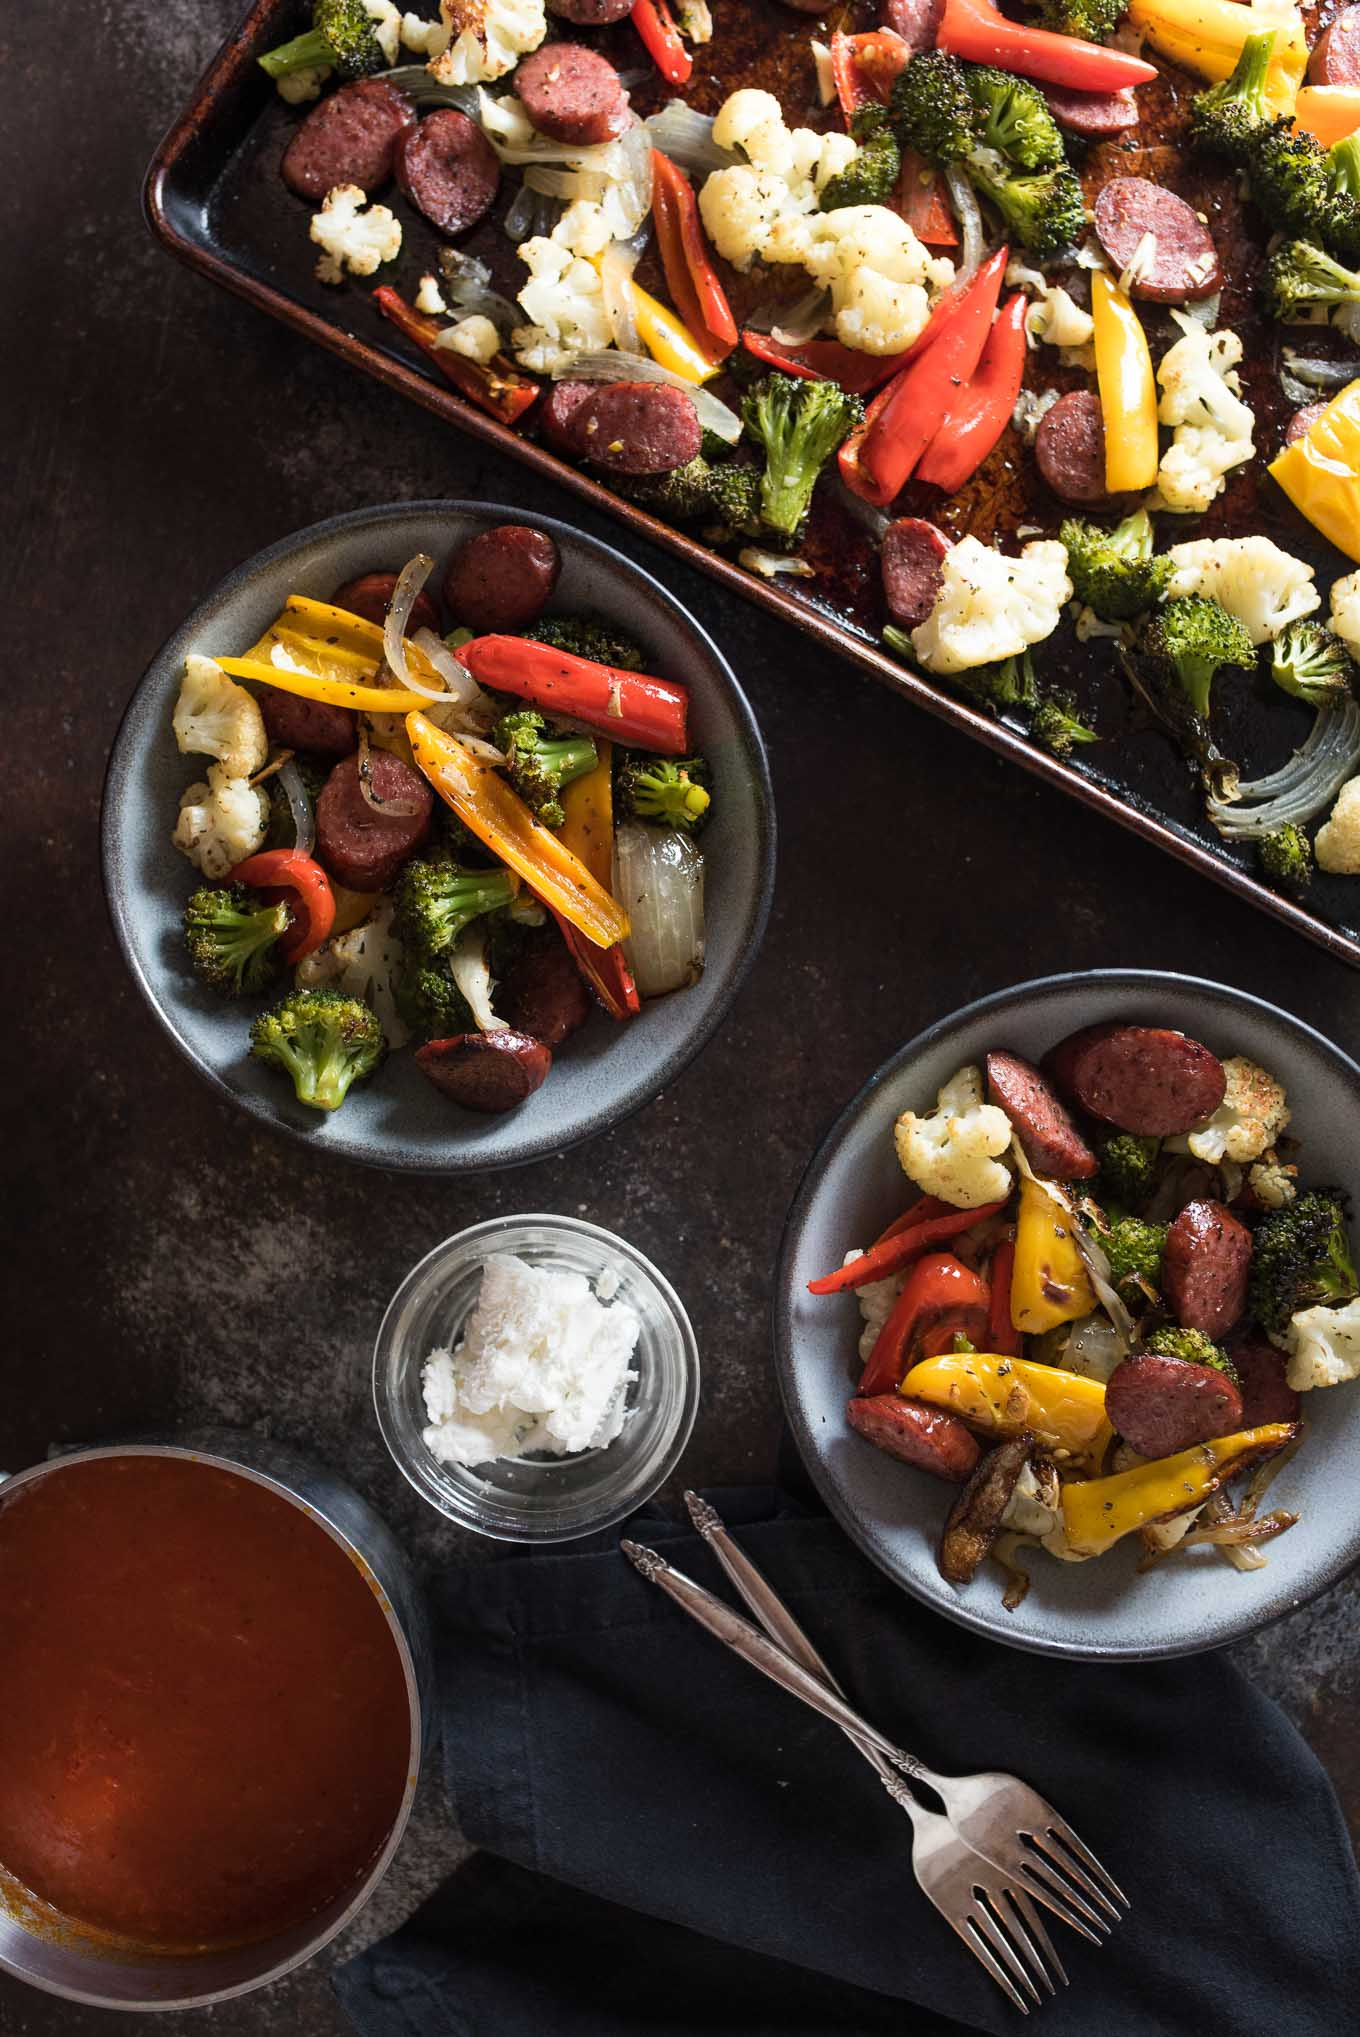 One Pan Roasted Sausage and Vegetables with Marinara and Goat Cheese is low calorie, gluten free and the answer to your dinner dilemma since it only takes a few minutes to prepare and the frees up time while it bakes in the oven.